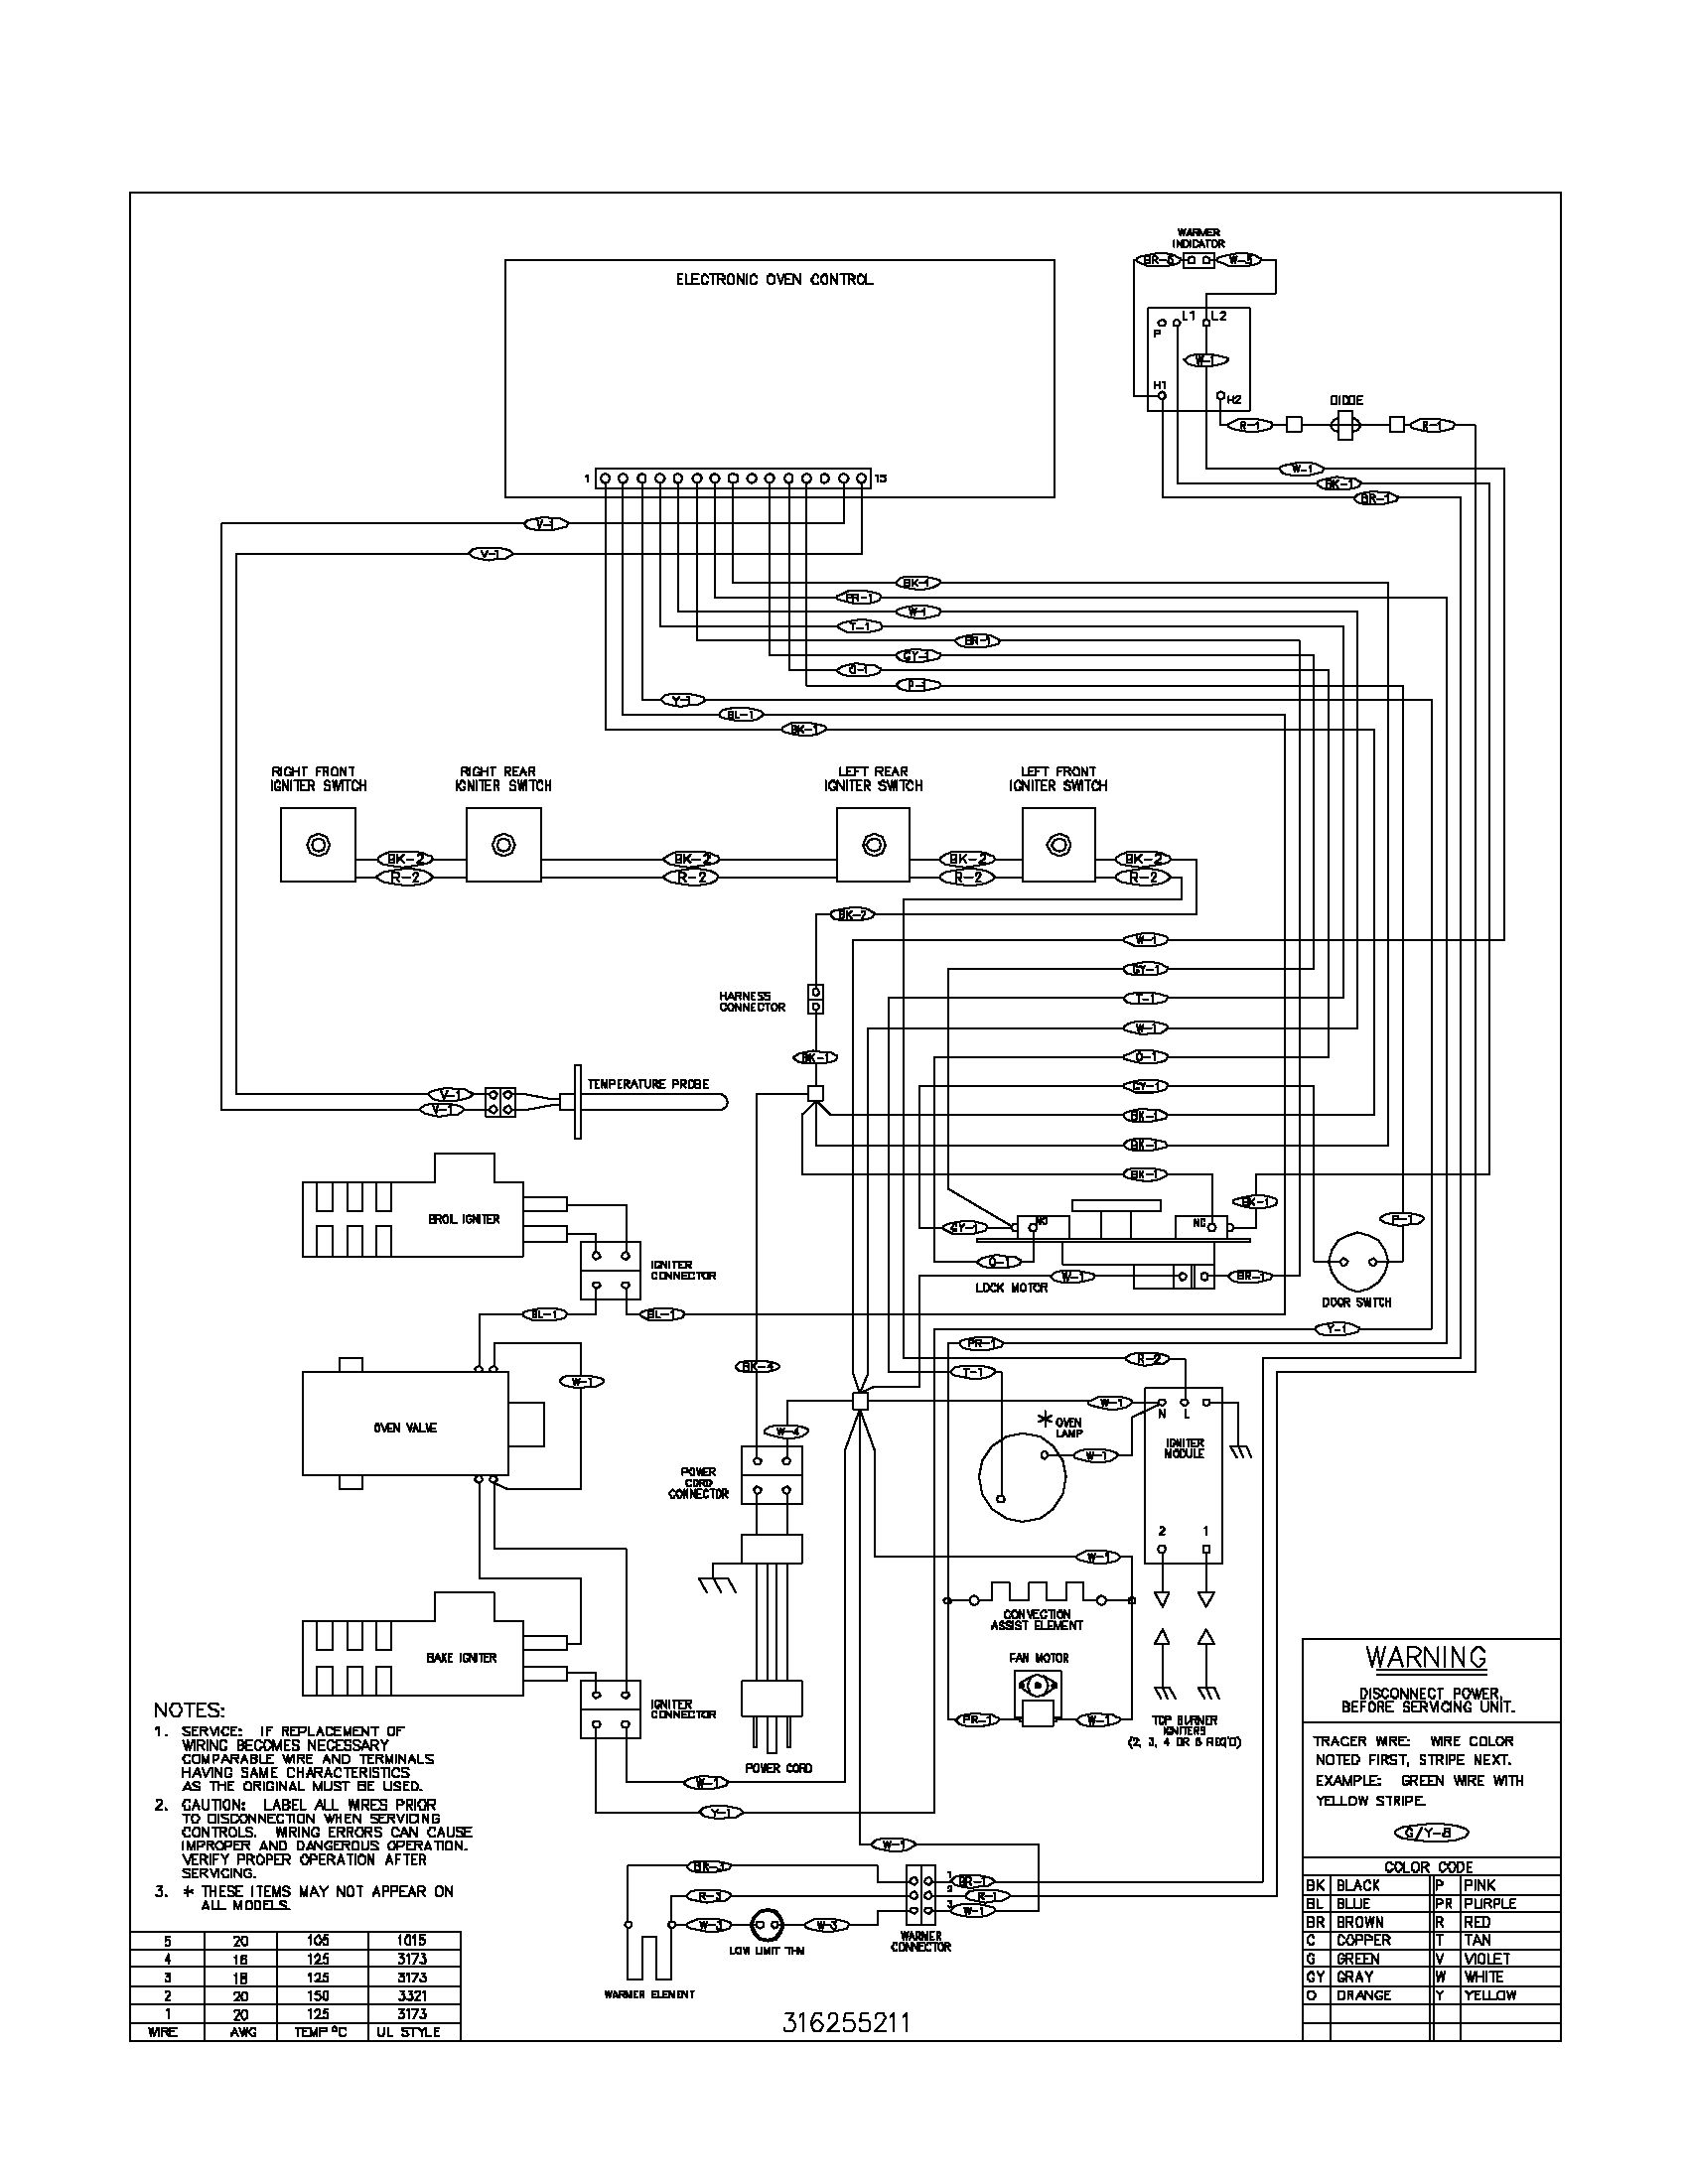 wiring diagram parts 100 [ kenmore dishwasher wiring diagram ] kenmore whirlpool Range Plug Wiring Diagram at crackthecode.co